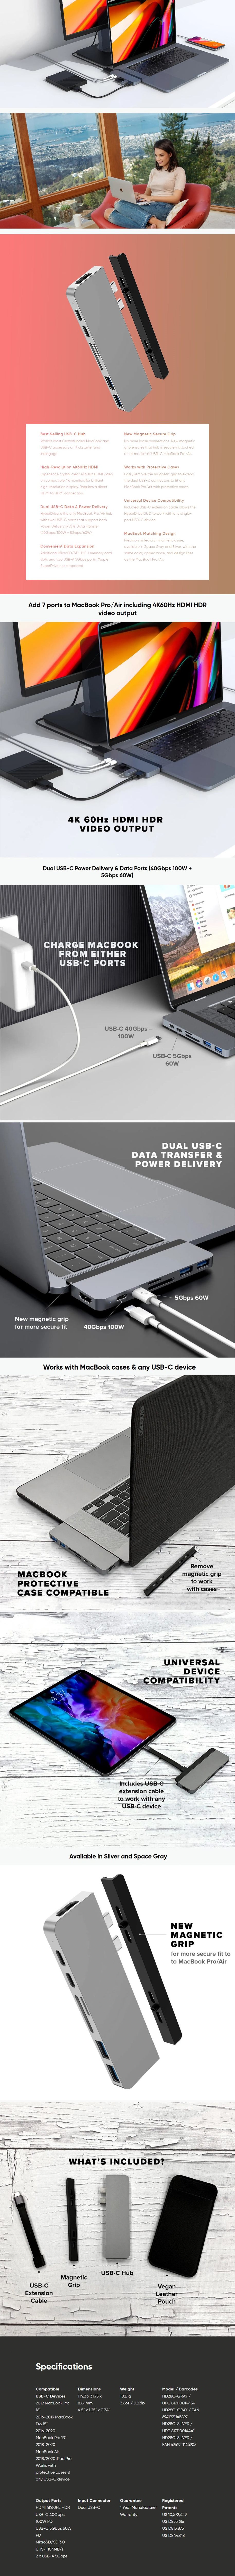 HyperDrive Duo V2 7-in-2 USB-C Hub for USB-C MacBook Pro/Air - Space Grey - Overview 1